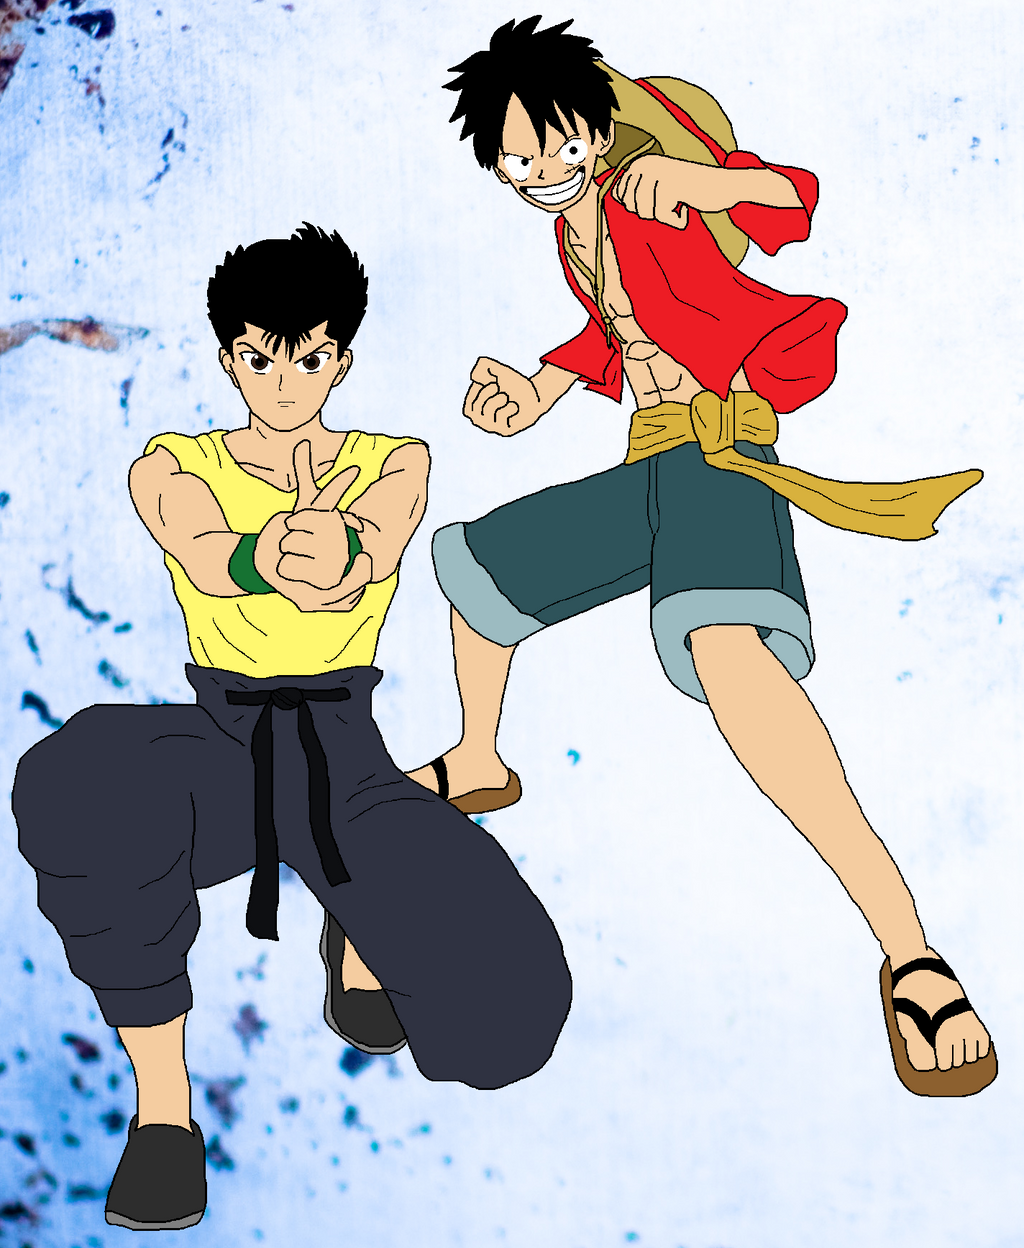 Monkey D. Luffy And Yusuke Urameshi By SpyDa89 On DeviantArt